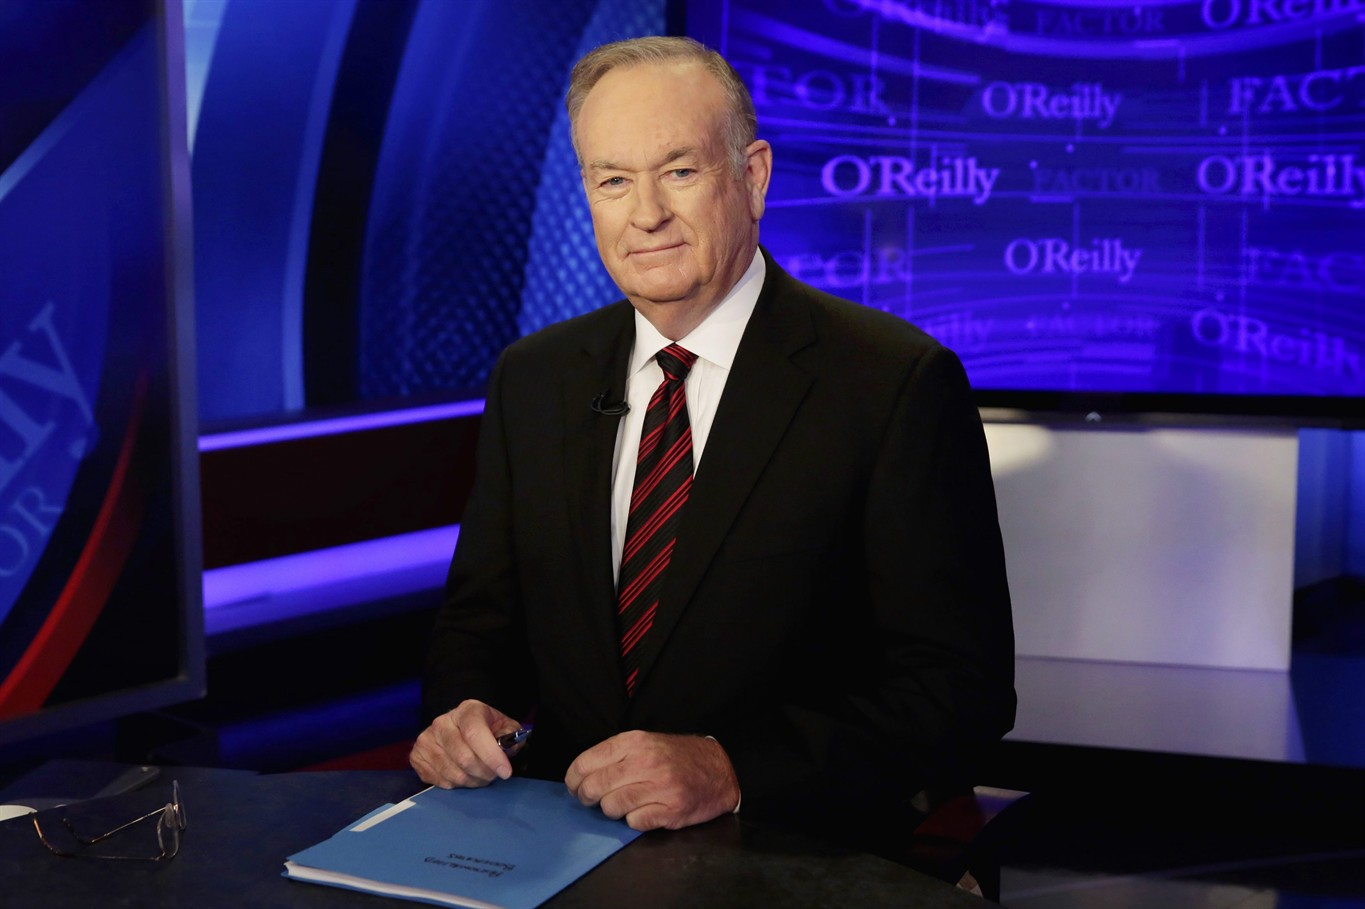 Fox News dumps Bill O'Reilly over harassment claims